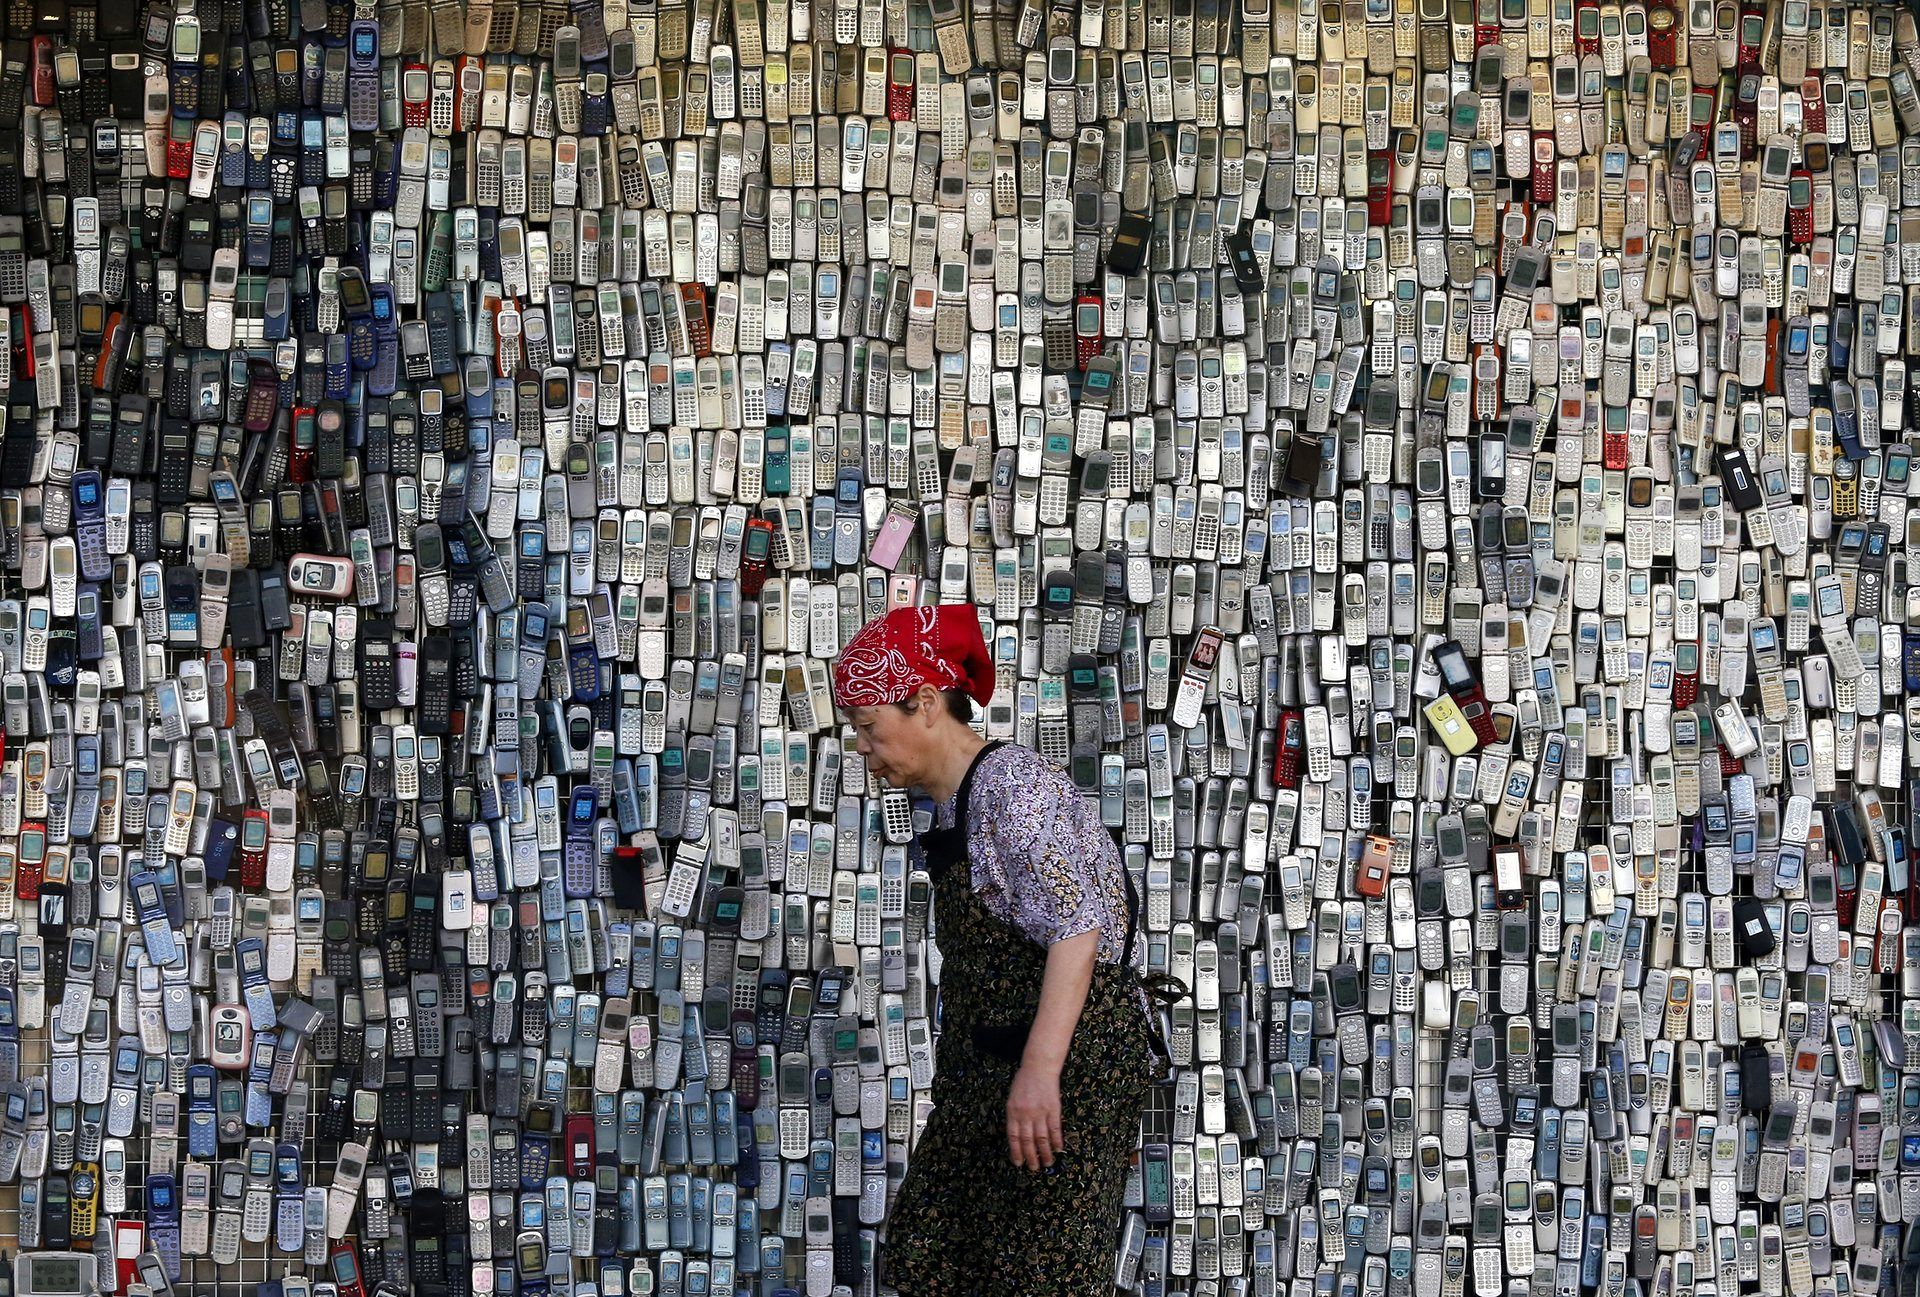 Tokyo, Japan—A woman walks past a wall of mobile phones displayed outside an electronics shop. (Photograph: Shuji Kajiyama/AP) http://www.theguardian.com/news/gallery/2016/jun/02/best-photographs-of-the-day-floods-in-germany-and-a-belgian-panda#img-11